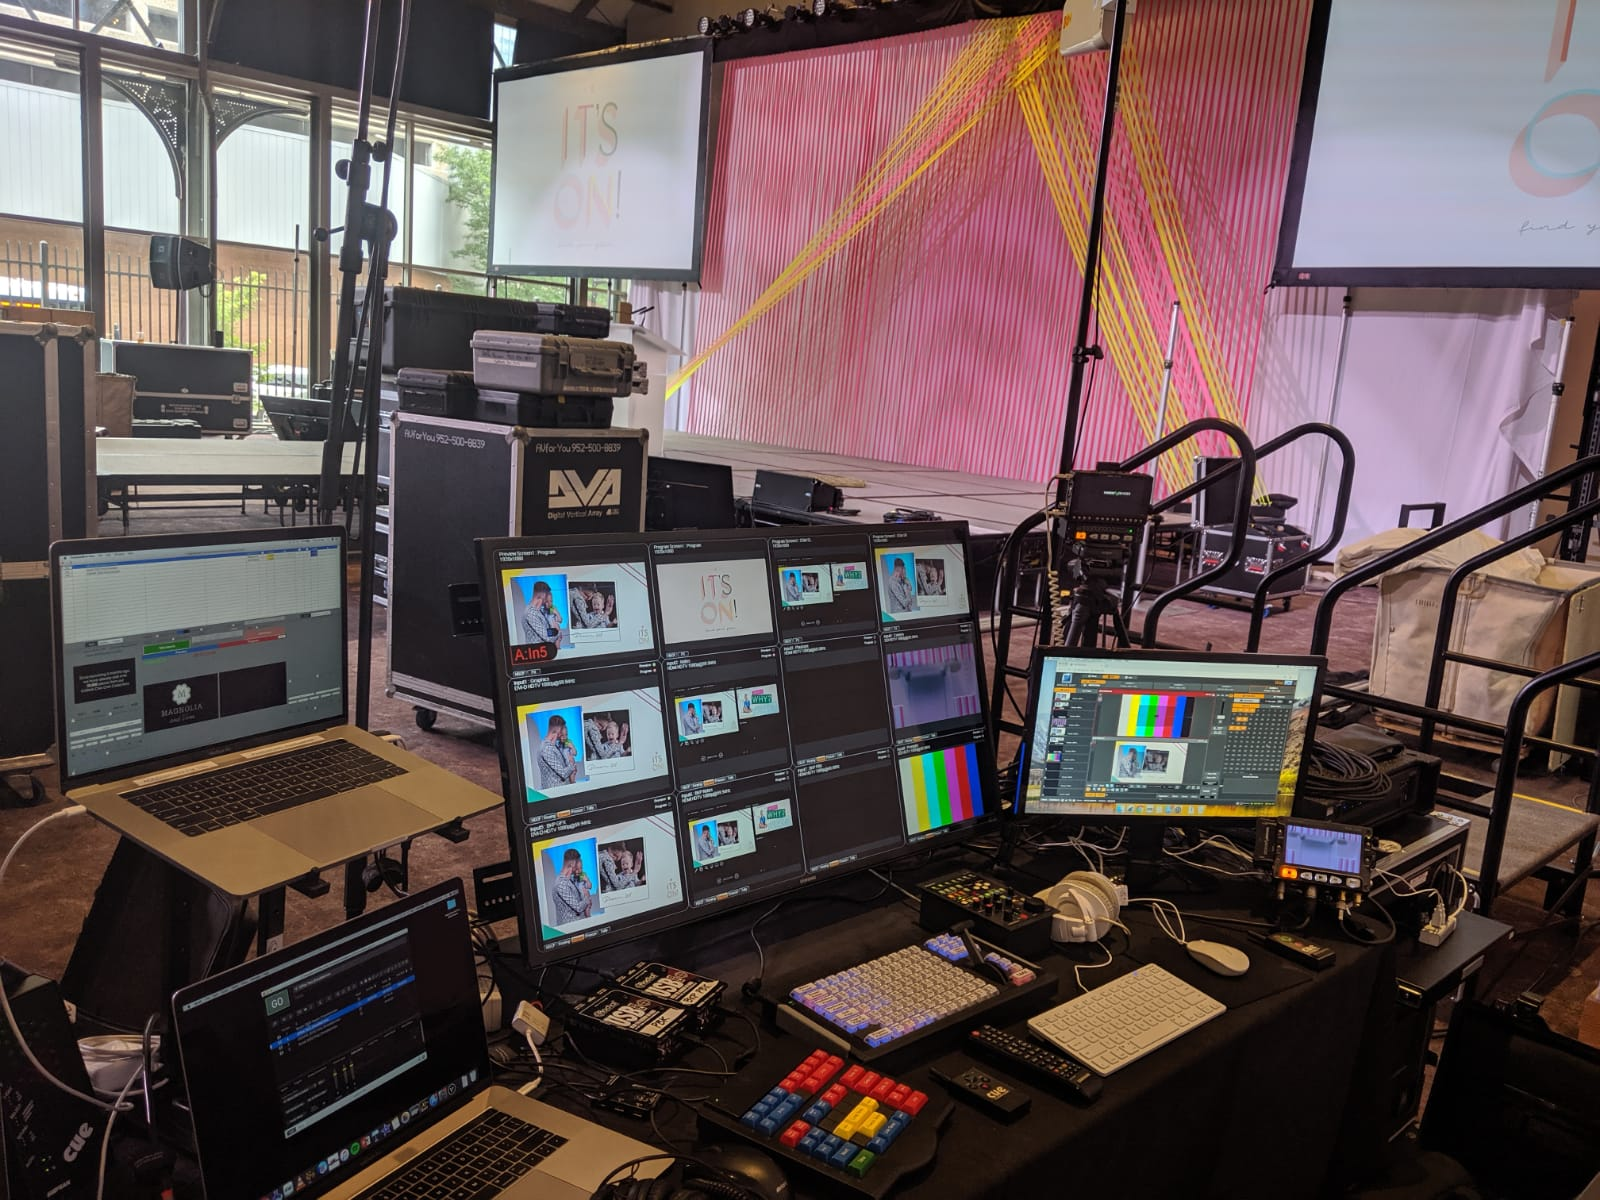 Picture of AV for You Rental Equipment for a Conference at The Depot Hotel in Minneapolis